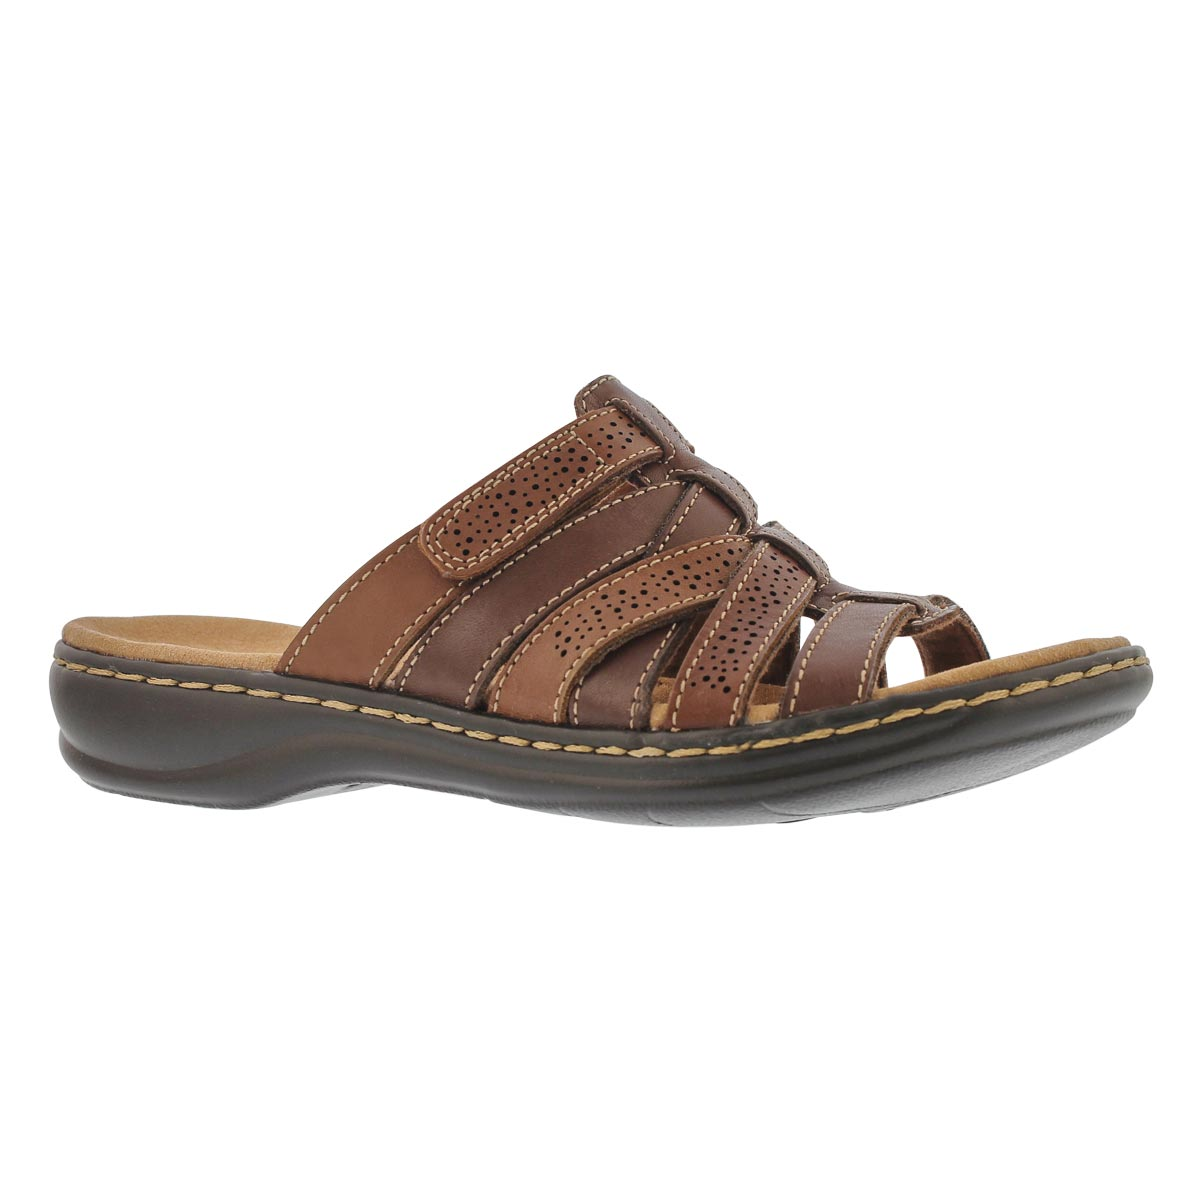 Women's LEISA FIELD brown casual slide sandals